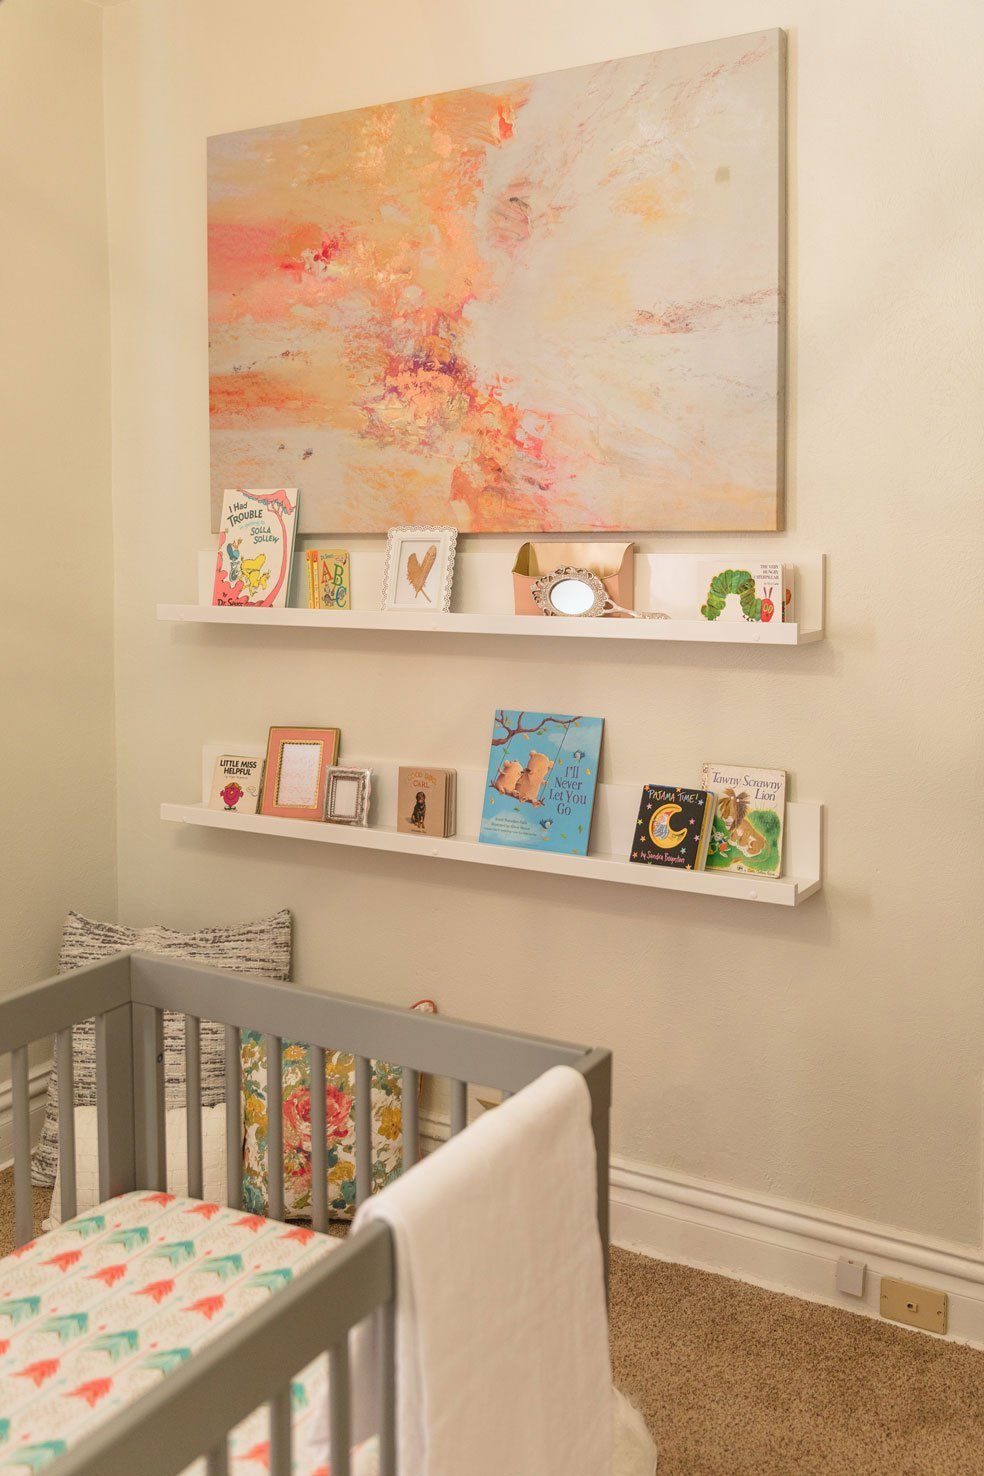 Wall art and shelves of the nursery.